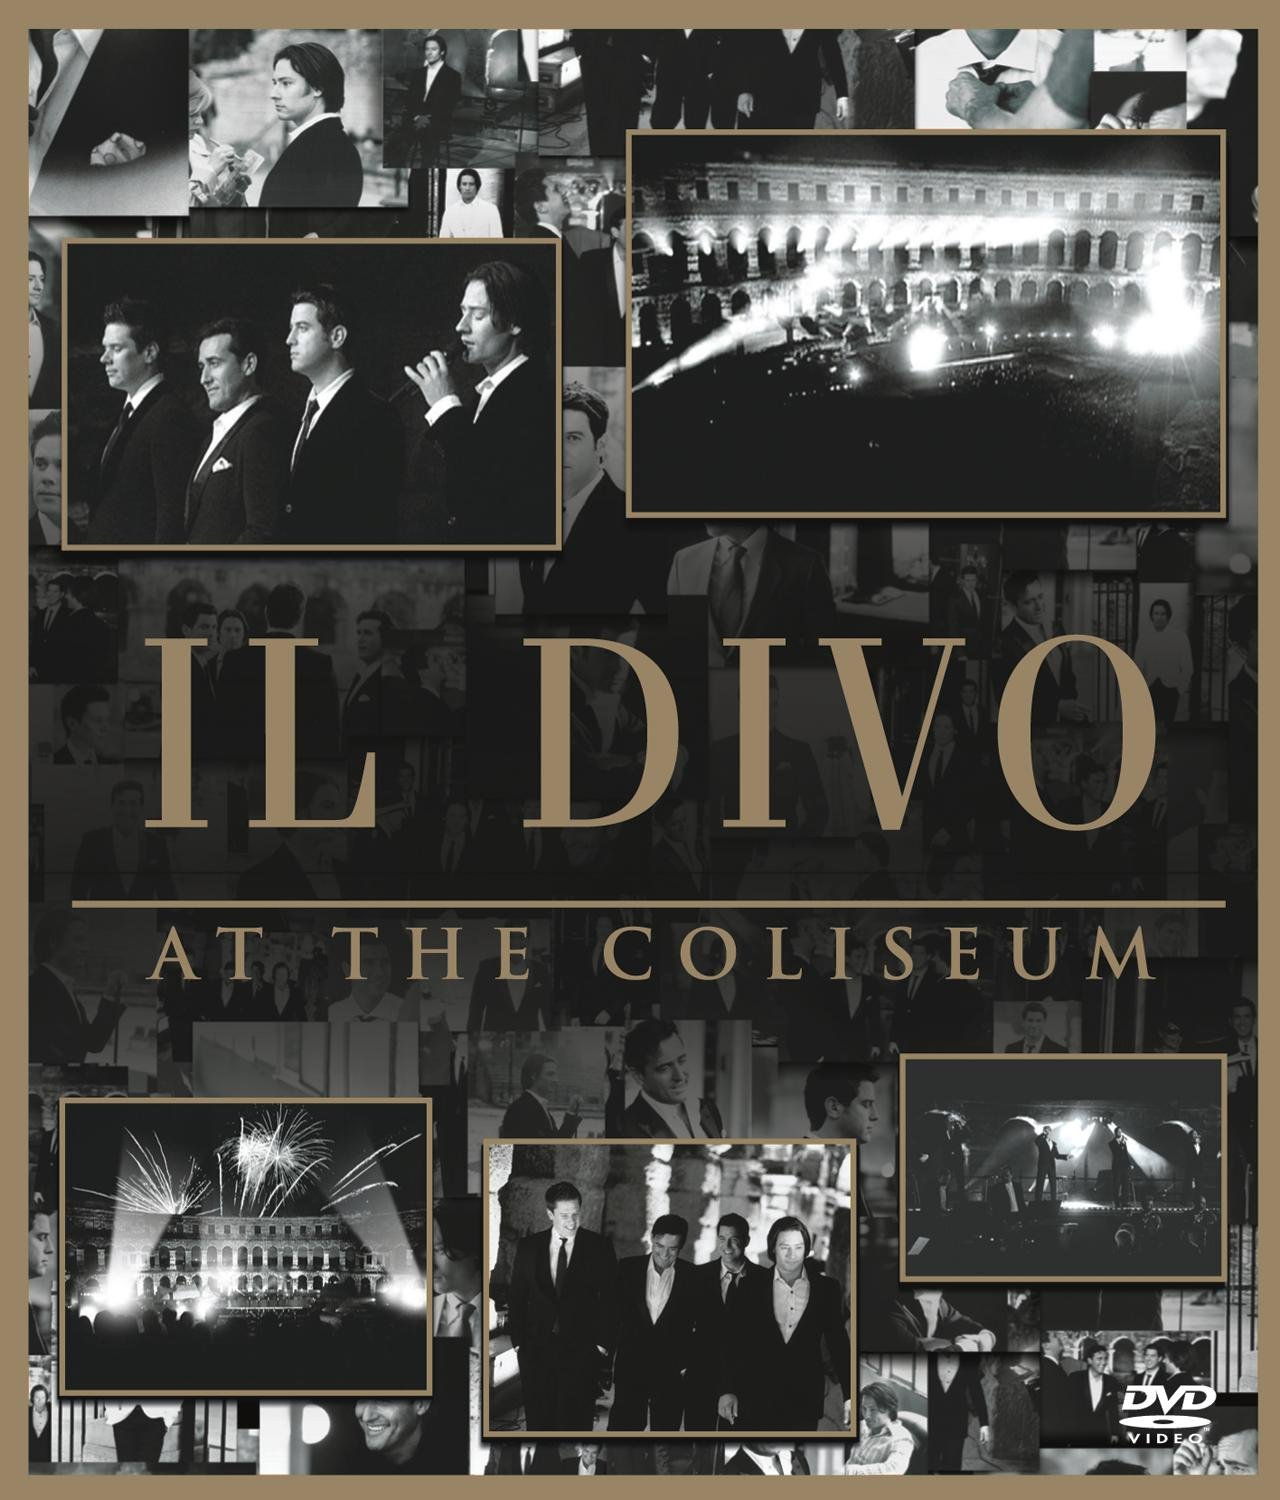 DVD AT COLISEUM BAIXAR THE IL DIVO